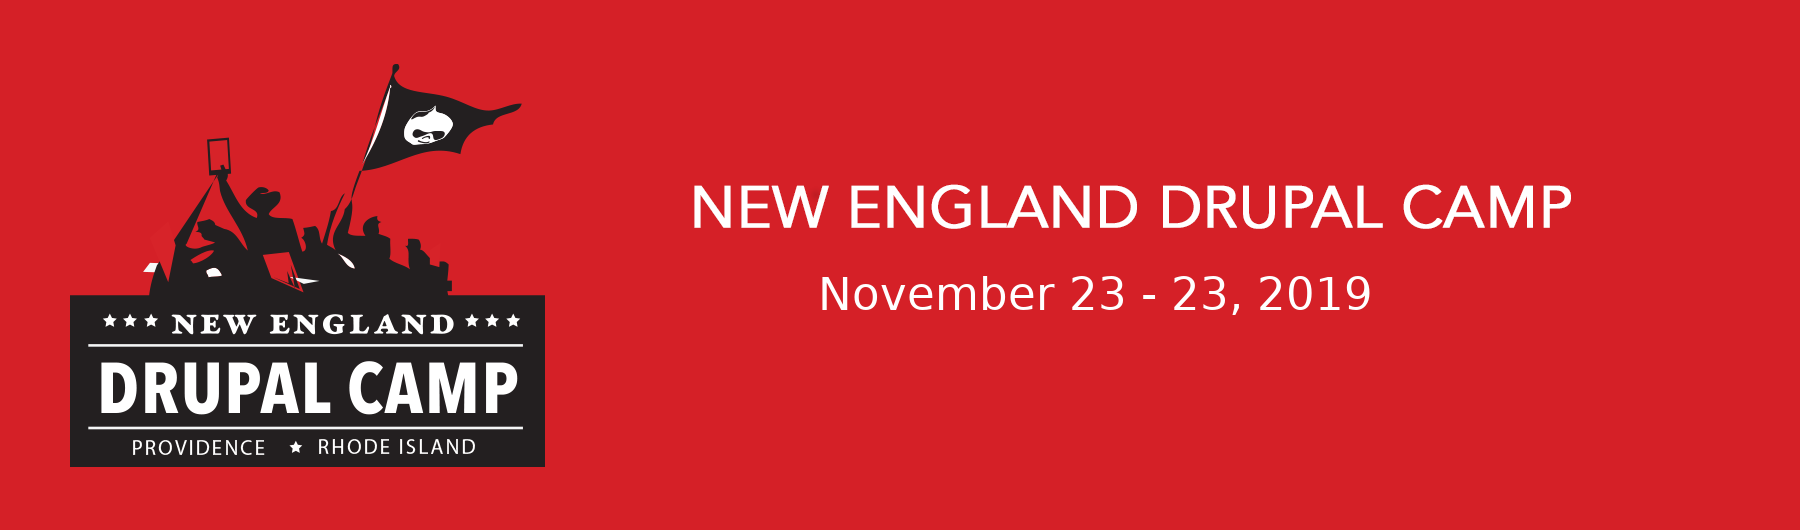 New England Drupal Camp 2019 Sponsorships